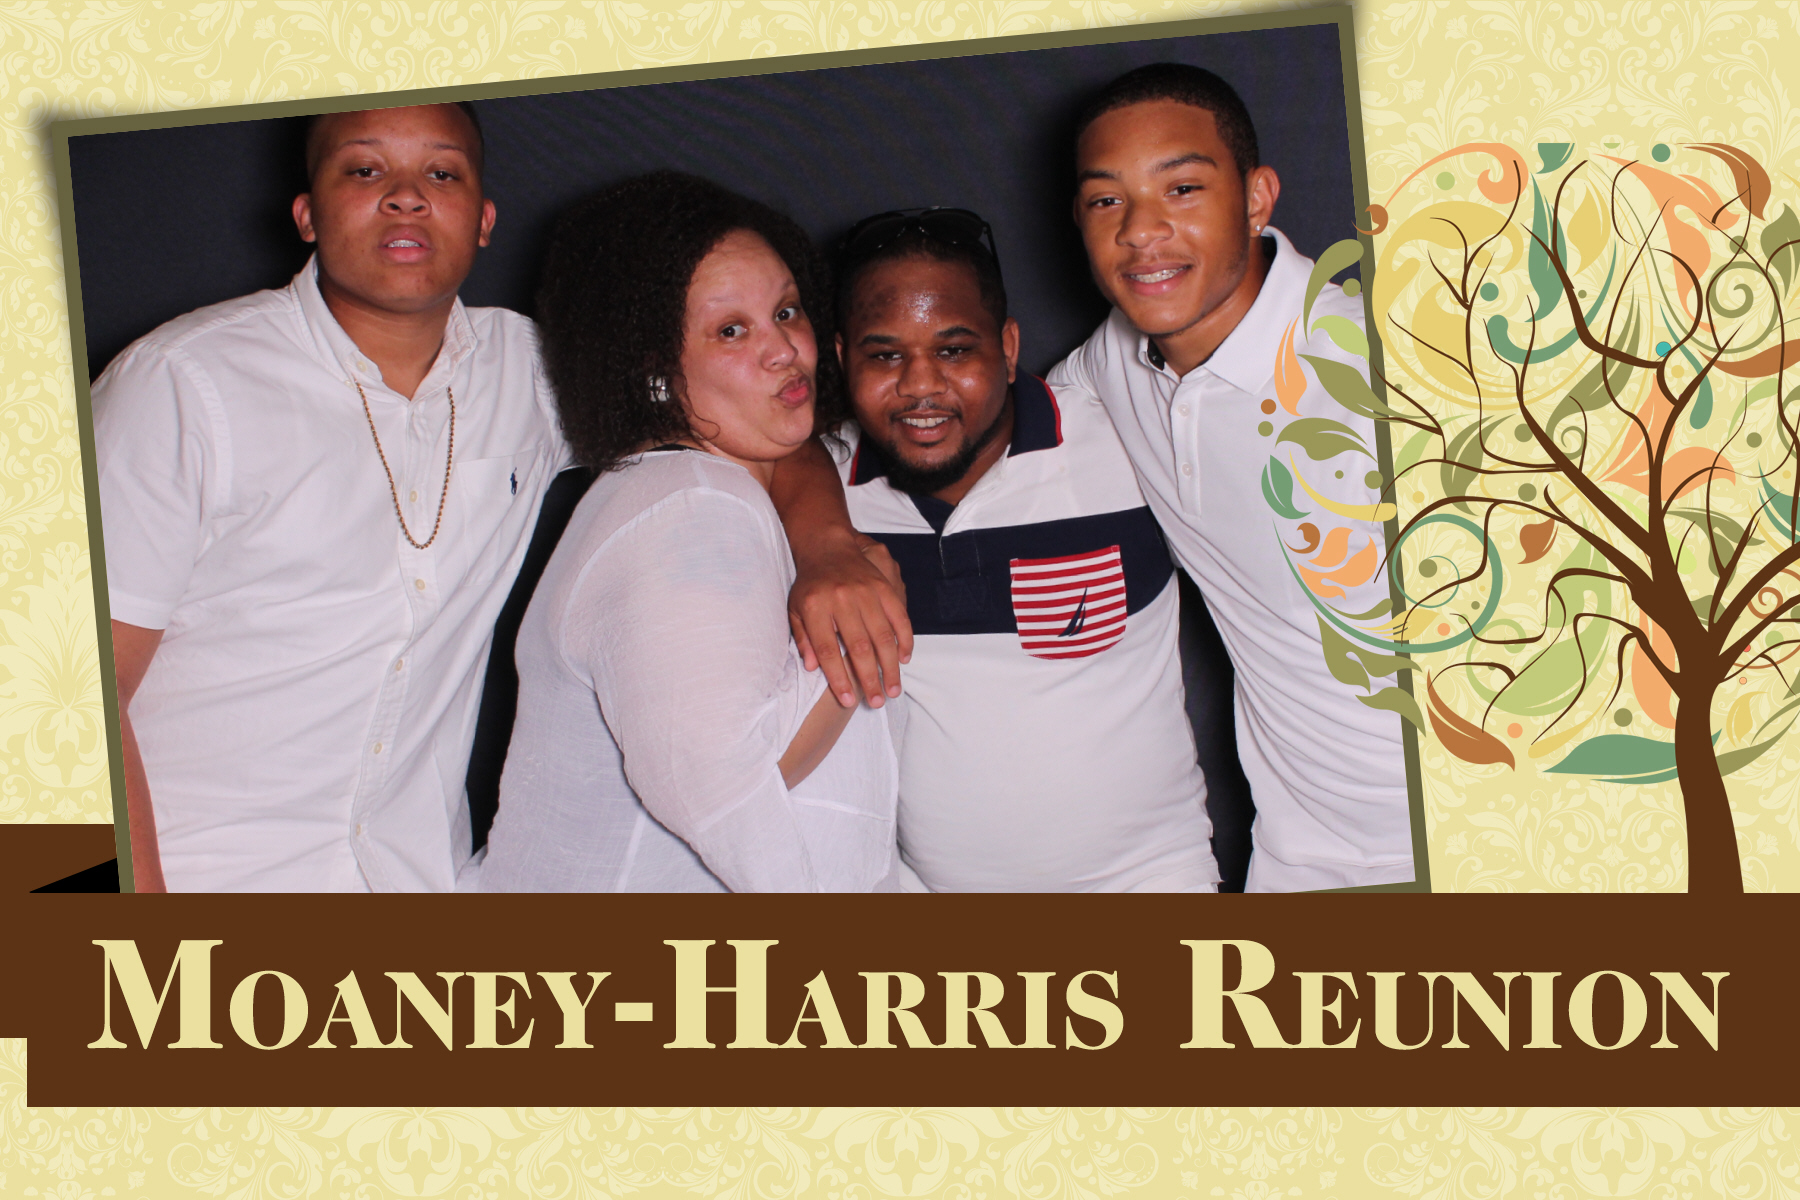 Moaney-Harris Reunion